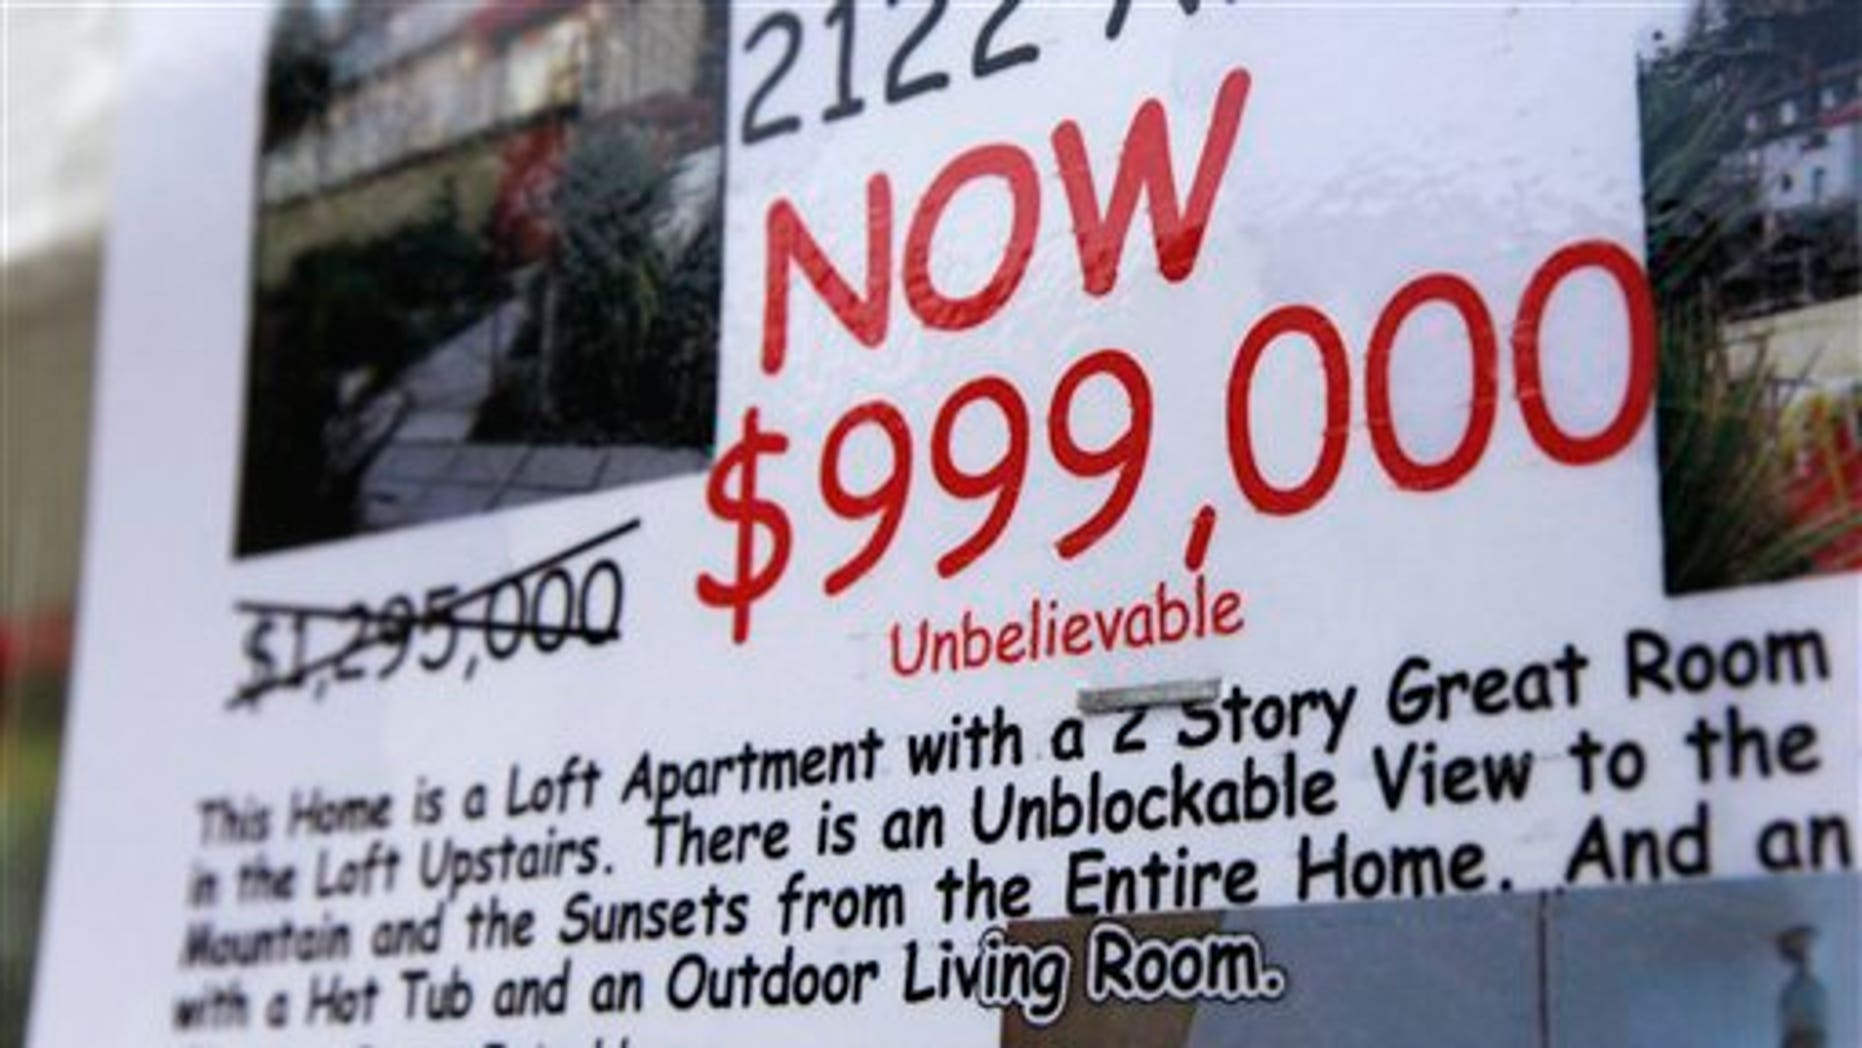 June 2011: A condo with a view and a reduced price is advertised for sale, in Seattle.